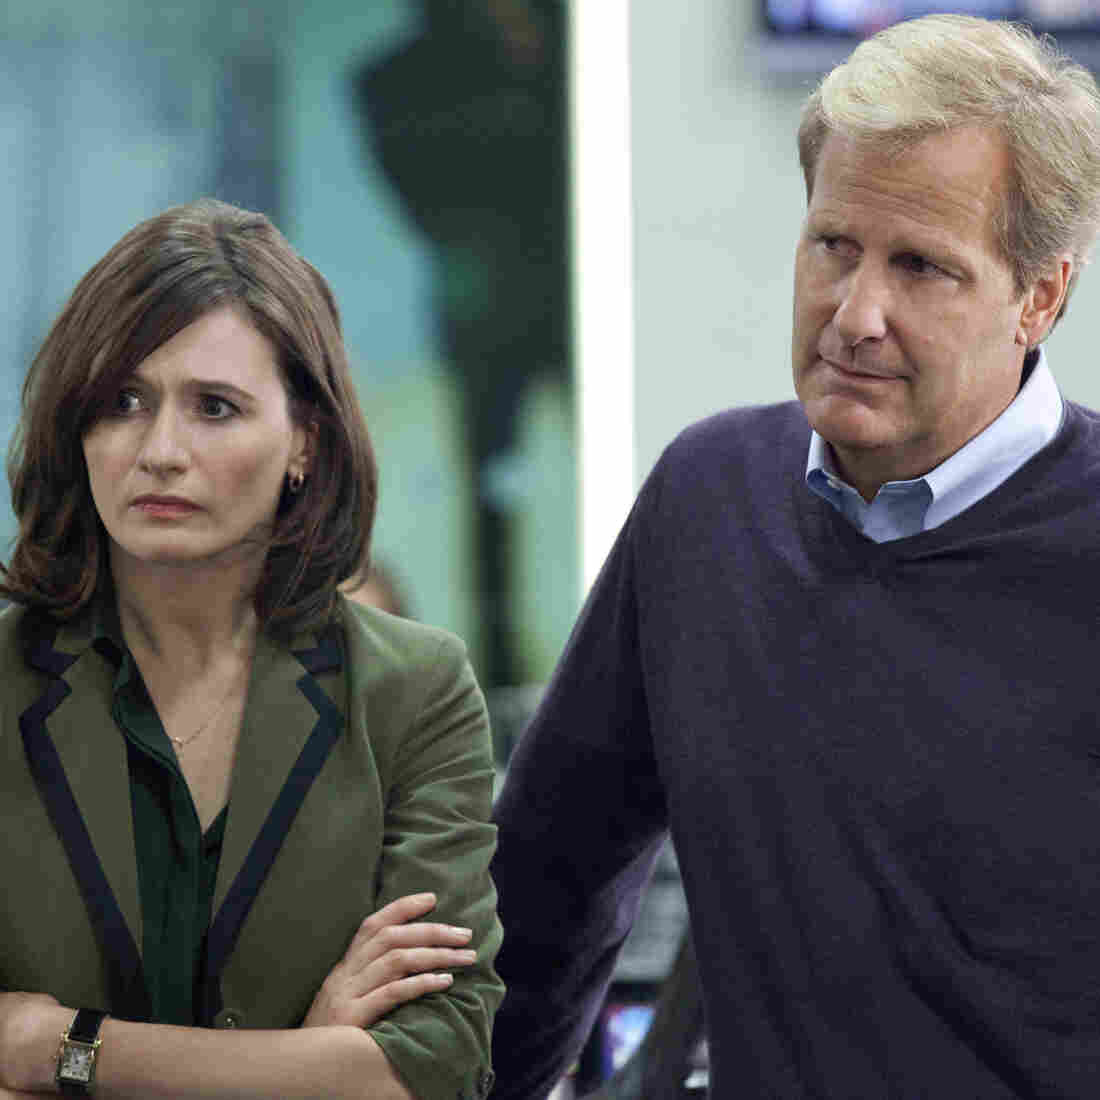 In Aaron Sorkin's new HBO drama, The Newsroom, producer MacKenzie McHale (Emily Mortimer) and anchorman Will McAvoy (Jeff Daniels) tackle real hard-hitting news stories and call out those who don't tell the truth.